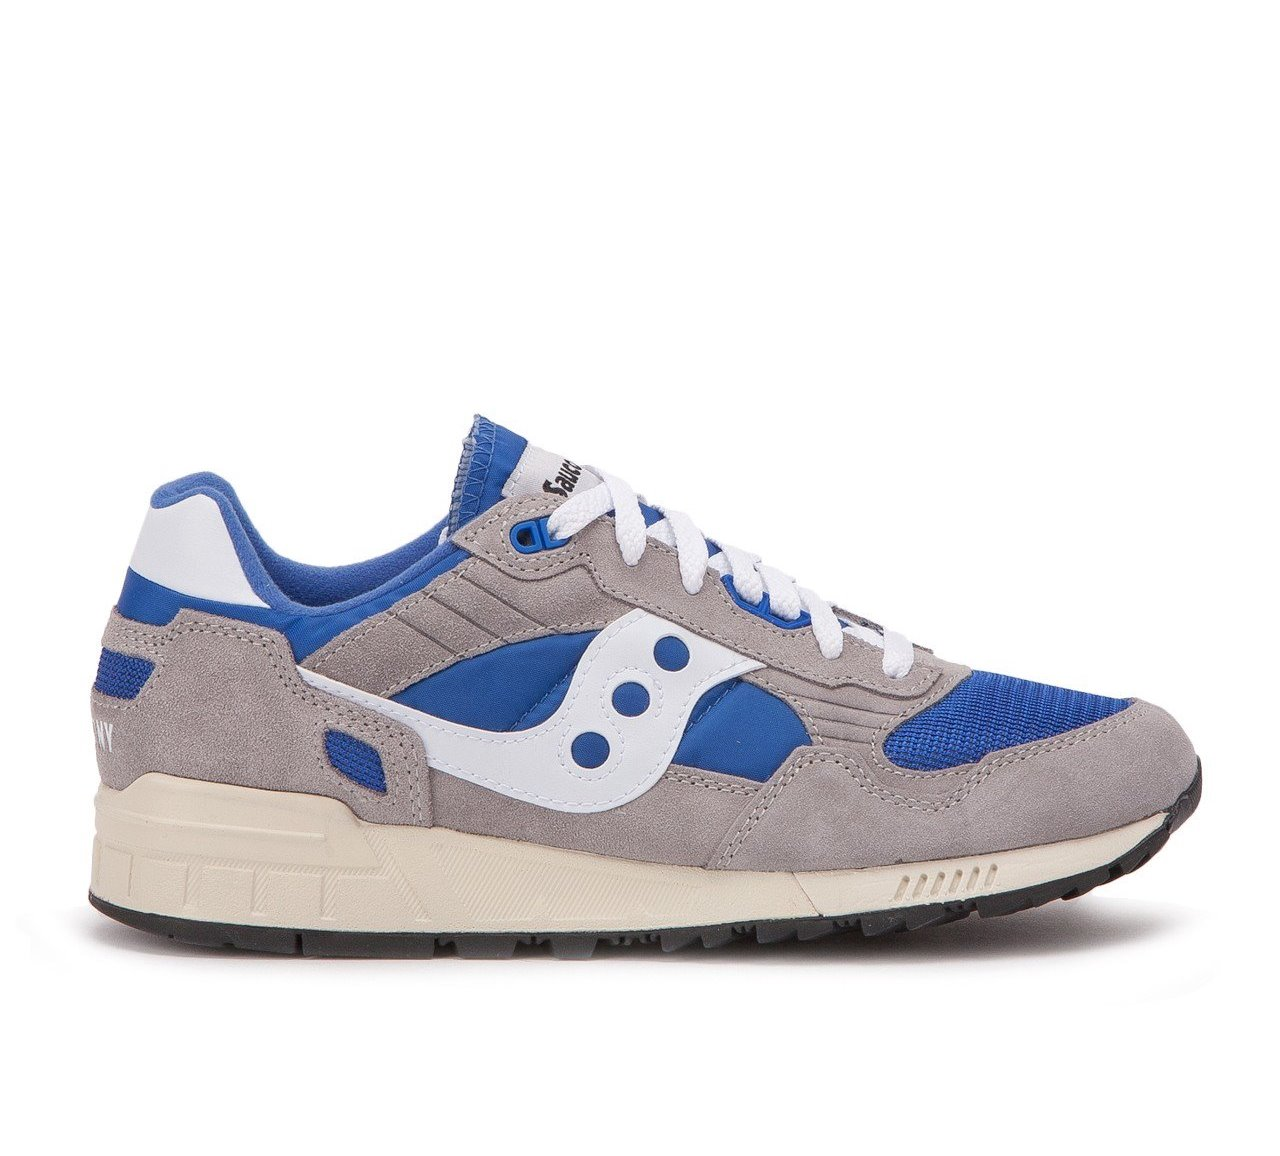 saucony-shadow-5000-vintage-grey-blue-s70404-3_edited